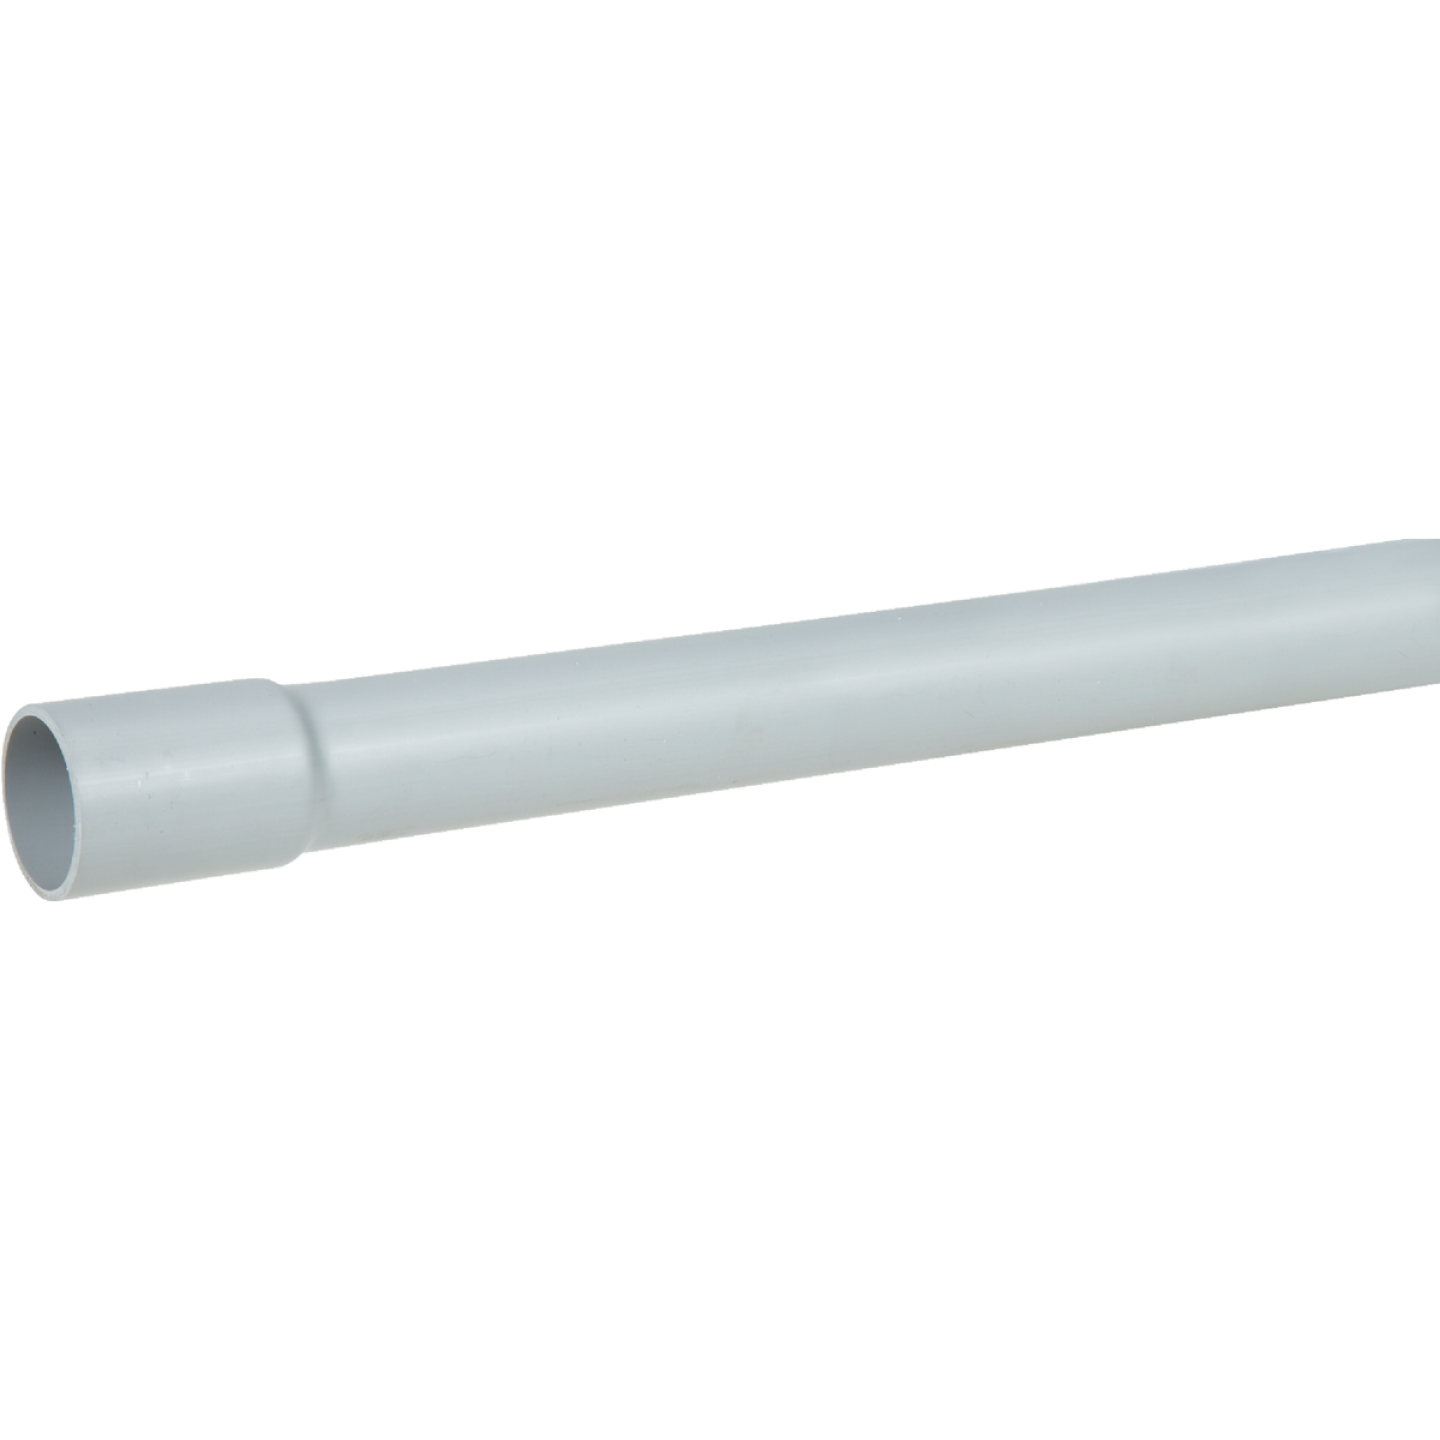 Allied 3 In. x 10 Ft. Schedule 40 PVC Conduit Image 1